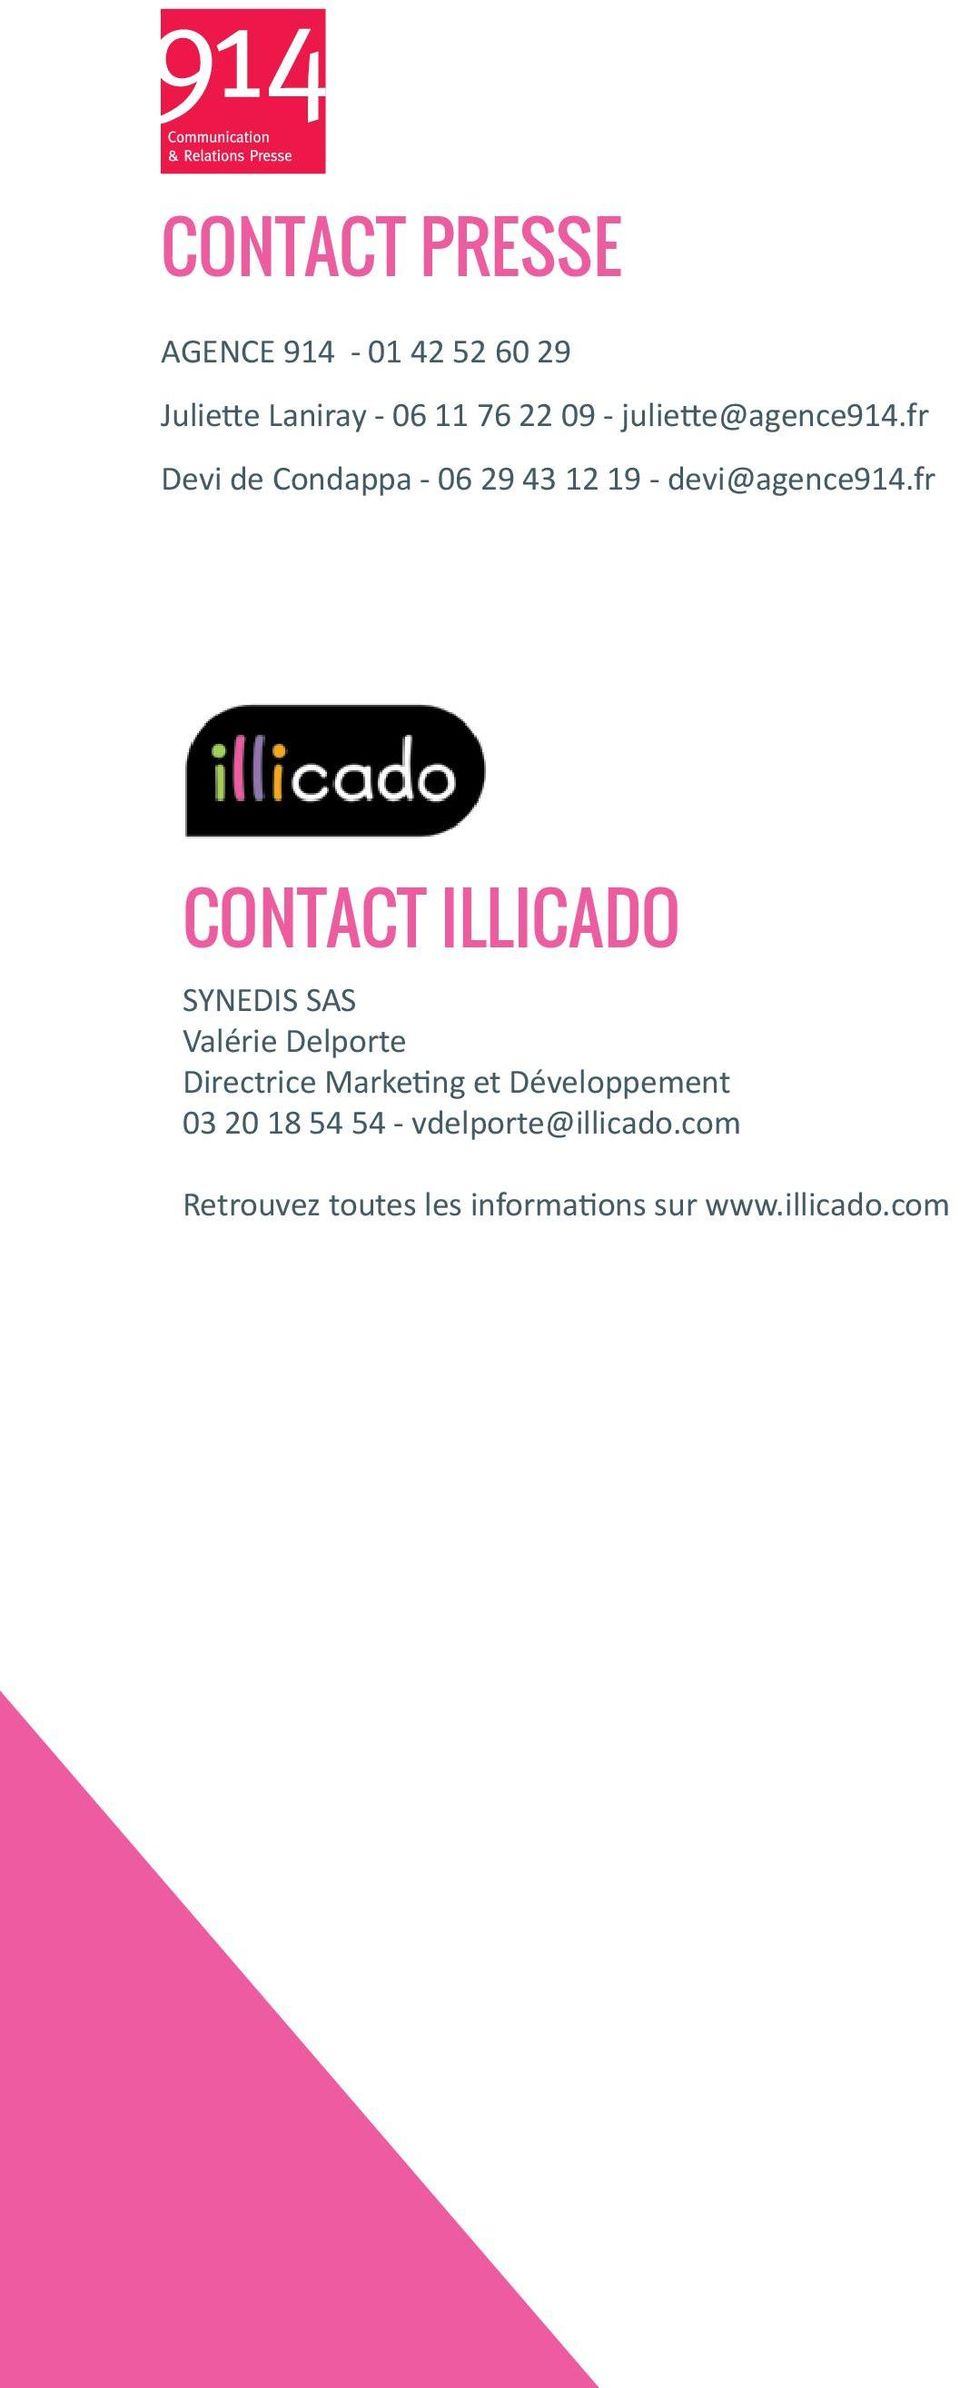 fr CONTACT illicado SYNEDIS SAS Valérie Delporte Directrice Marketing et